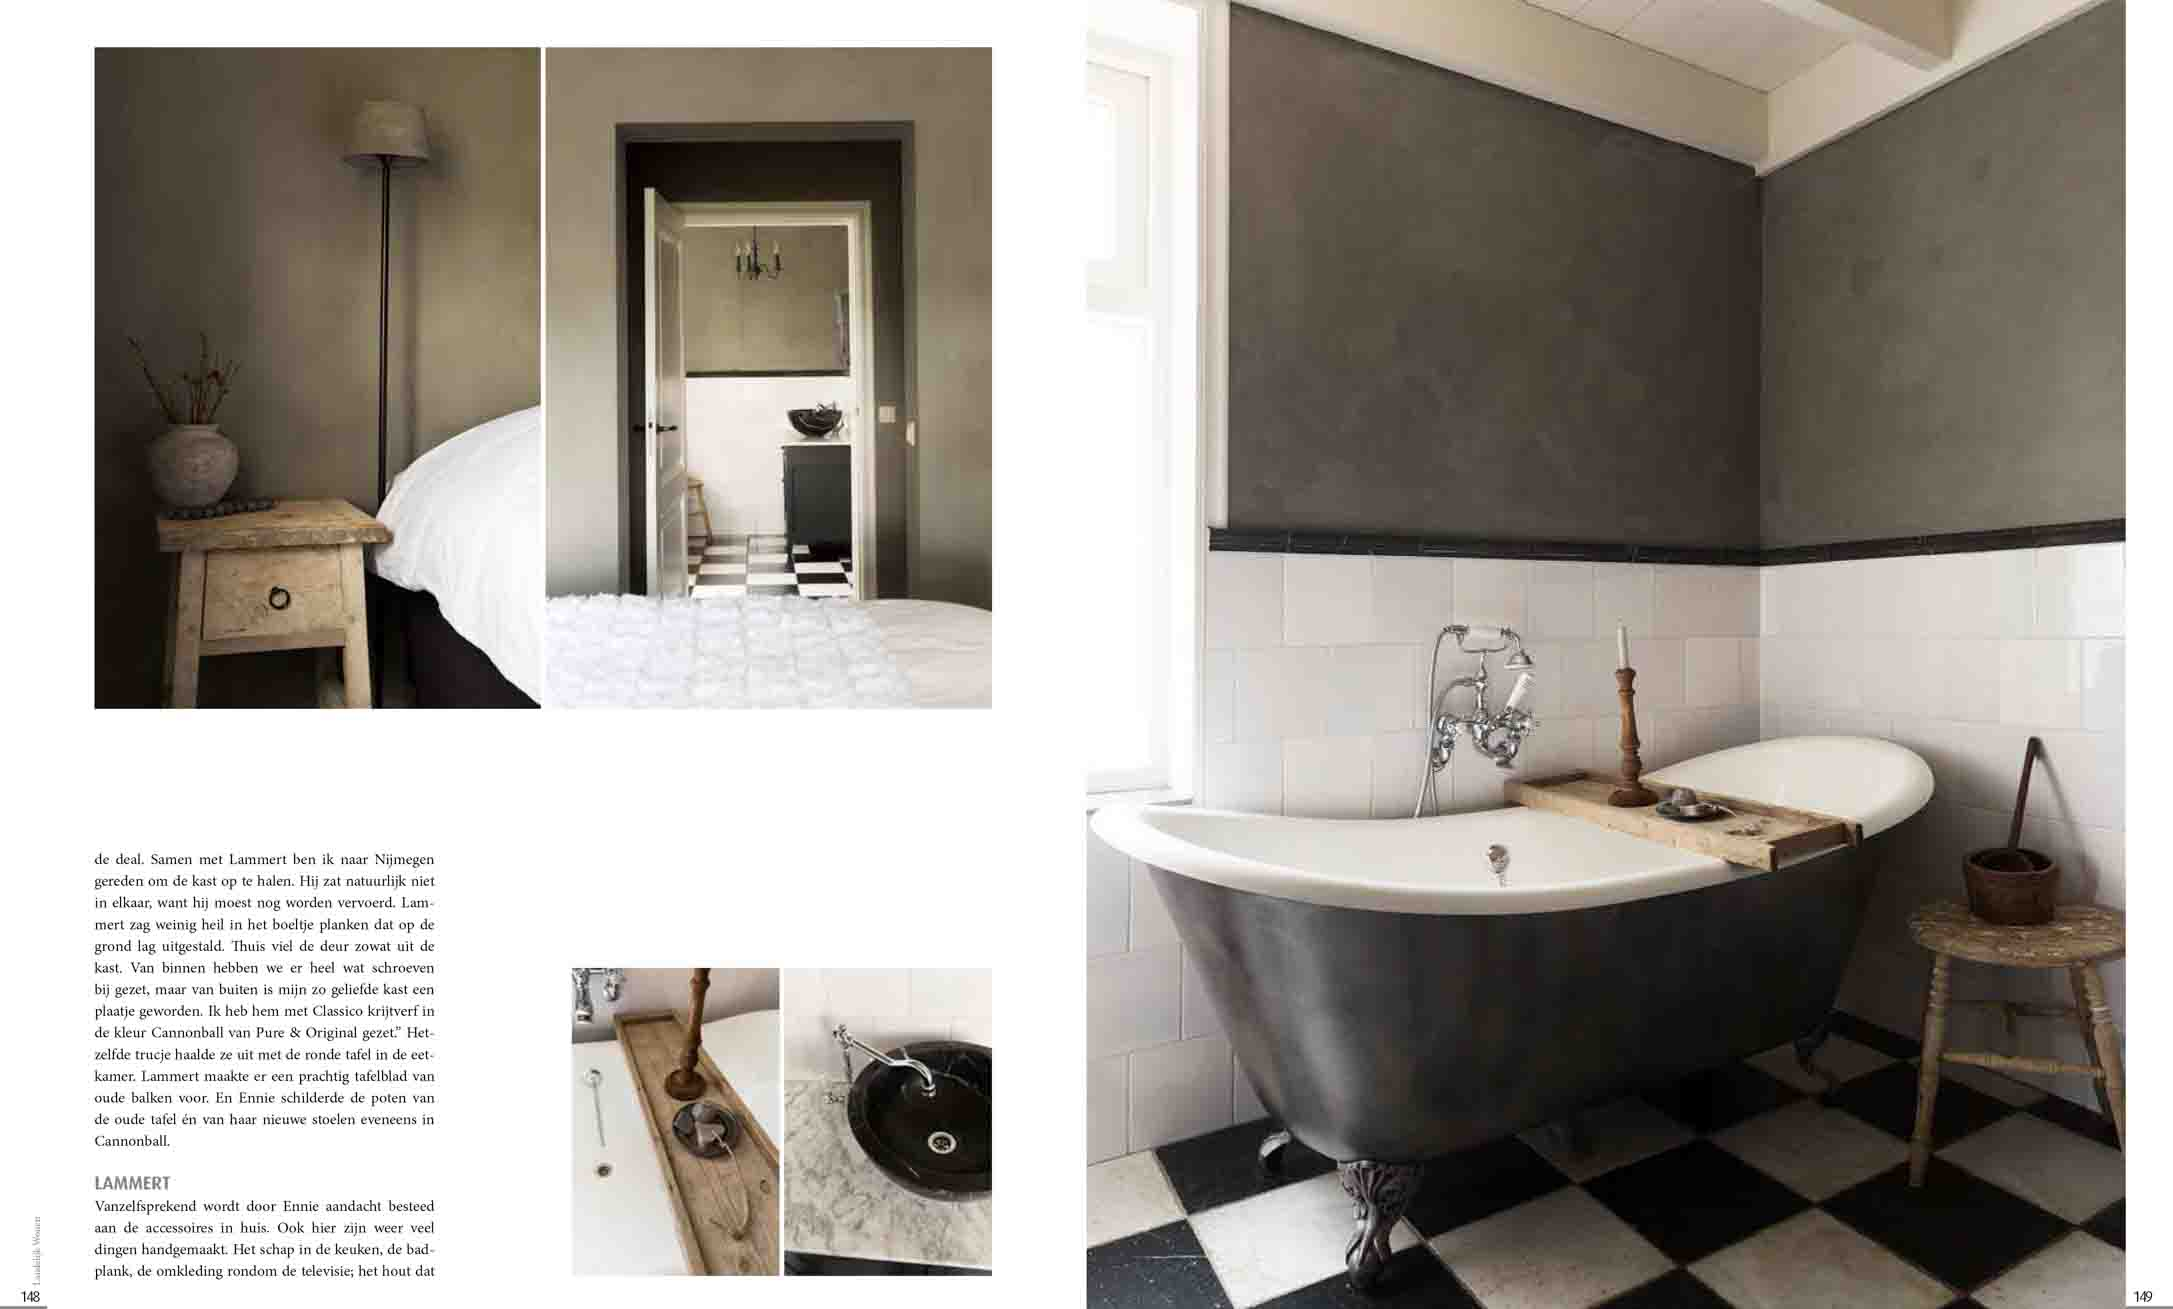 The bathroom and bedroom in black, white and grey